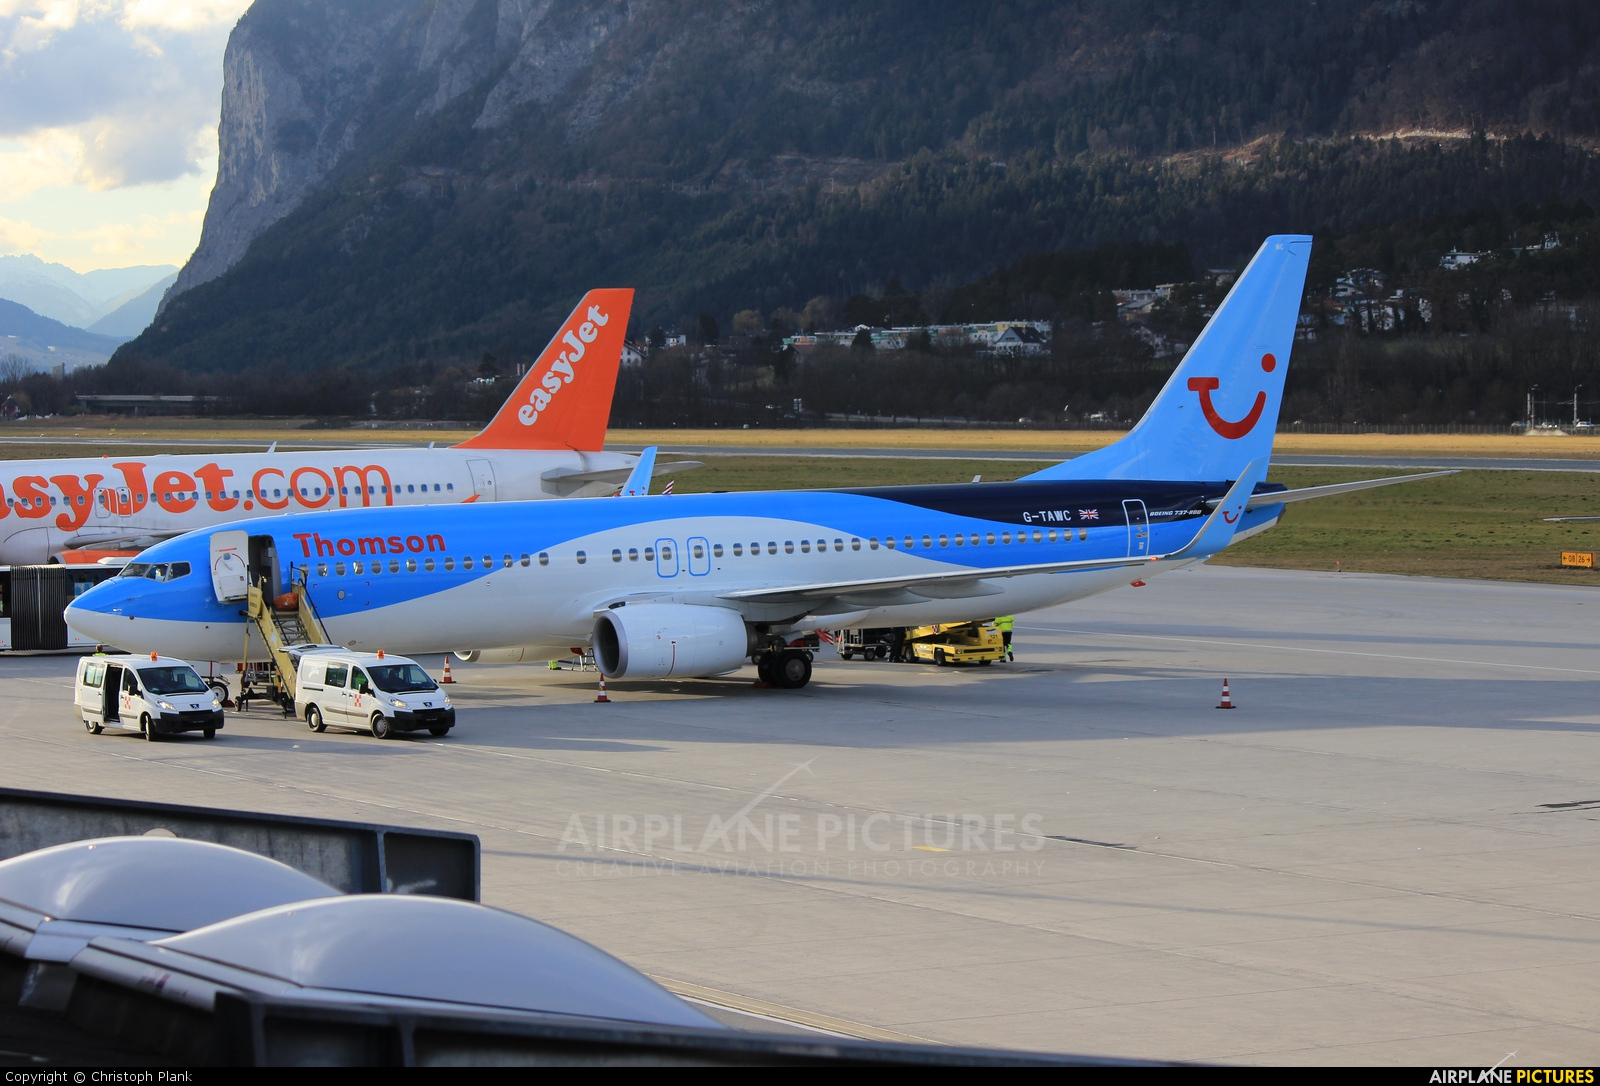 Thomson/Thomsonfly G-TAWC aircraft at Innsbruck